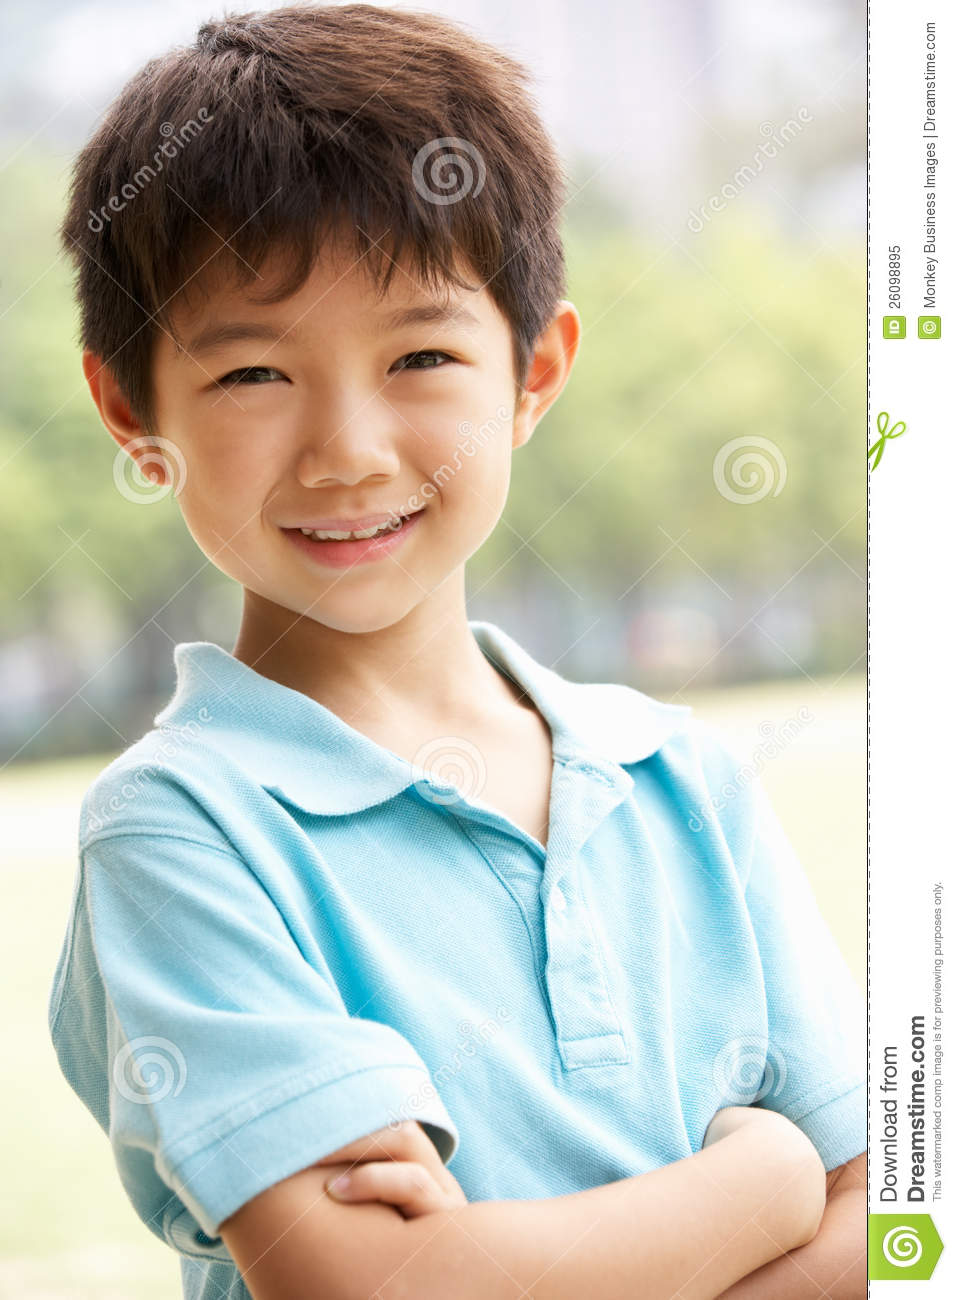 Head And Shoulders Portrait Of Chinese Boy Royalty Free Stock Photo ...